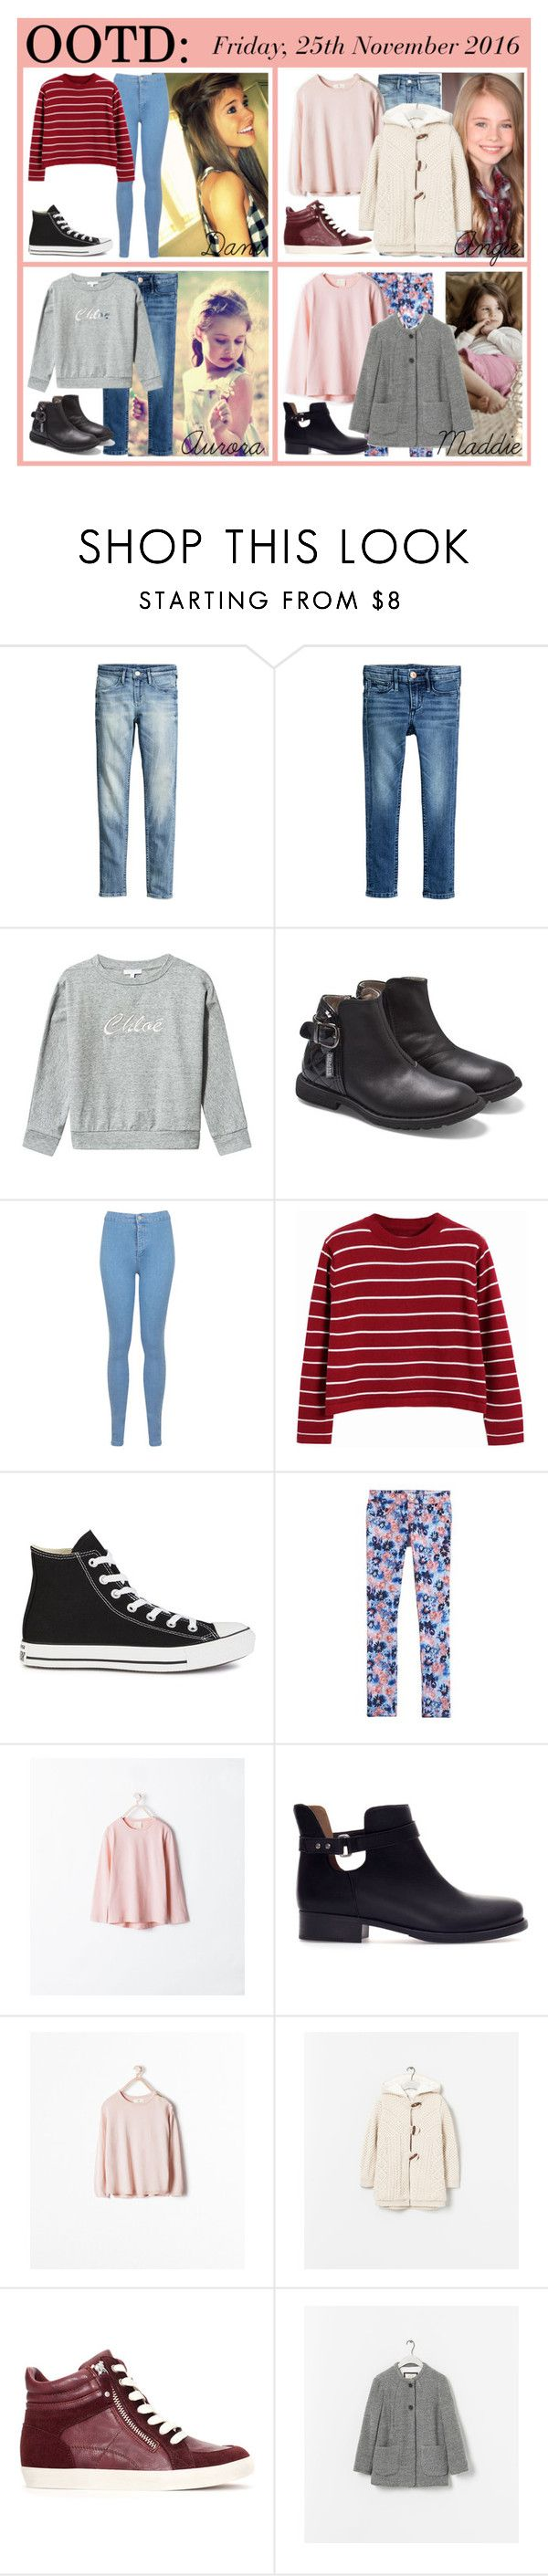 """OOTD - 25.11.2016"" by datpolyfamily ❤ liked on Polyvore featuring step2wo, Miss Selfridge, Chicnova Fashion, Converse and Zara"